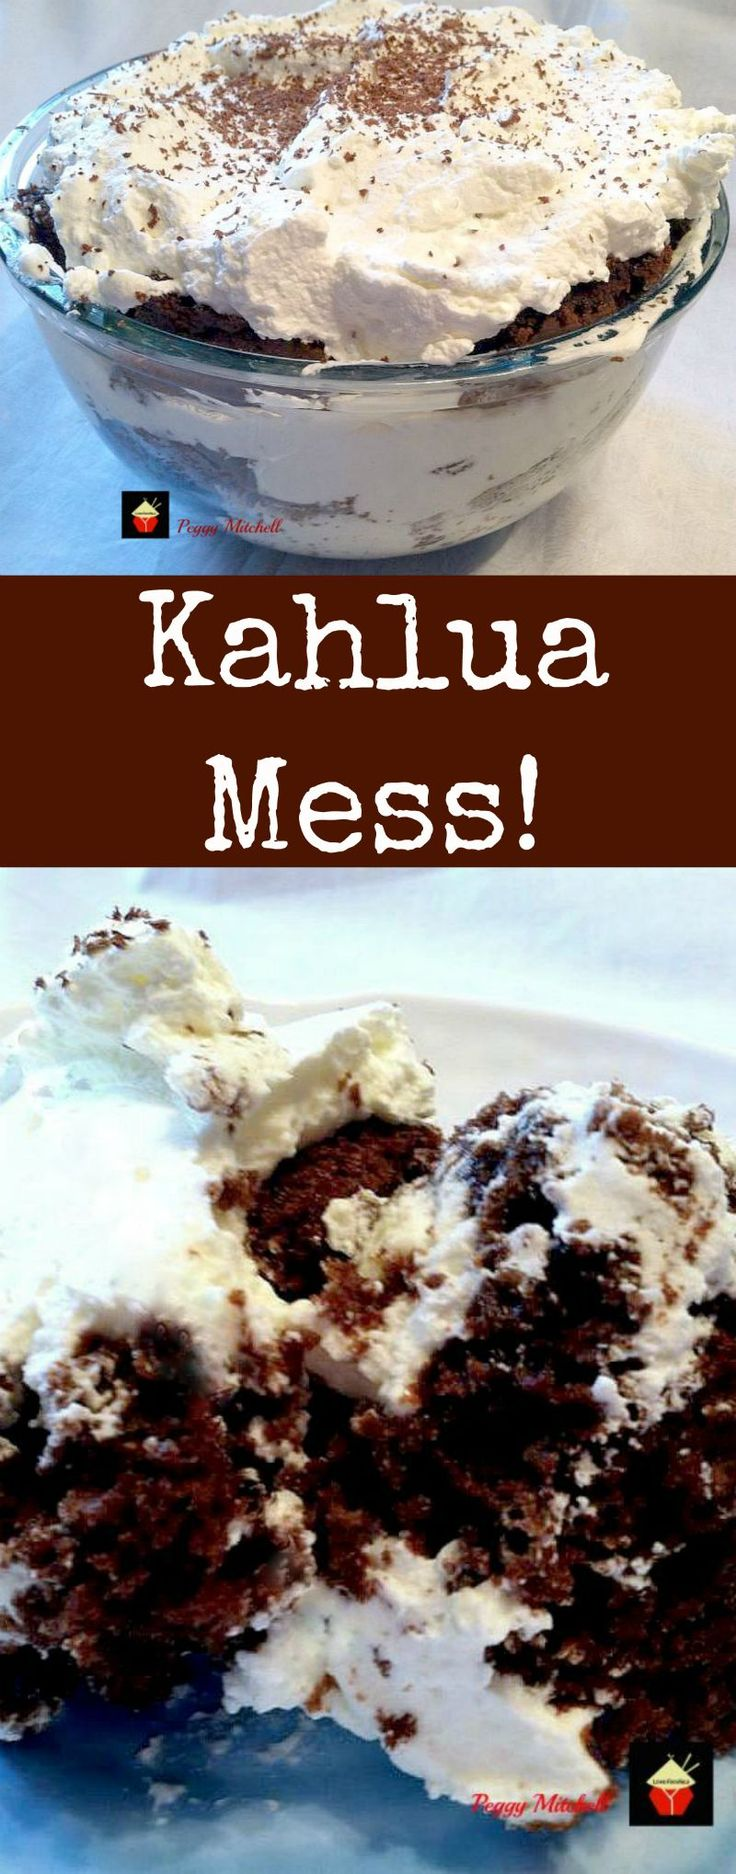 Kahlua Mess..This is one awesome dessert! A delicious chocolate trifle laced with Kahlua throughout. Easy to make cake recipe too. Nx